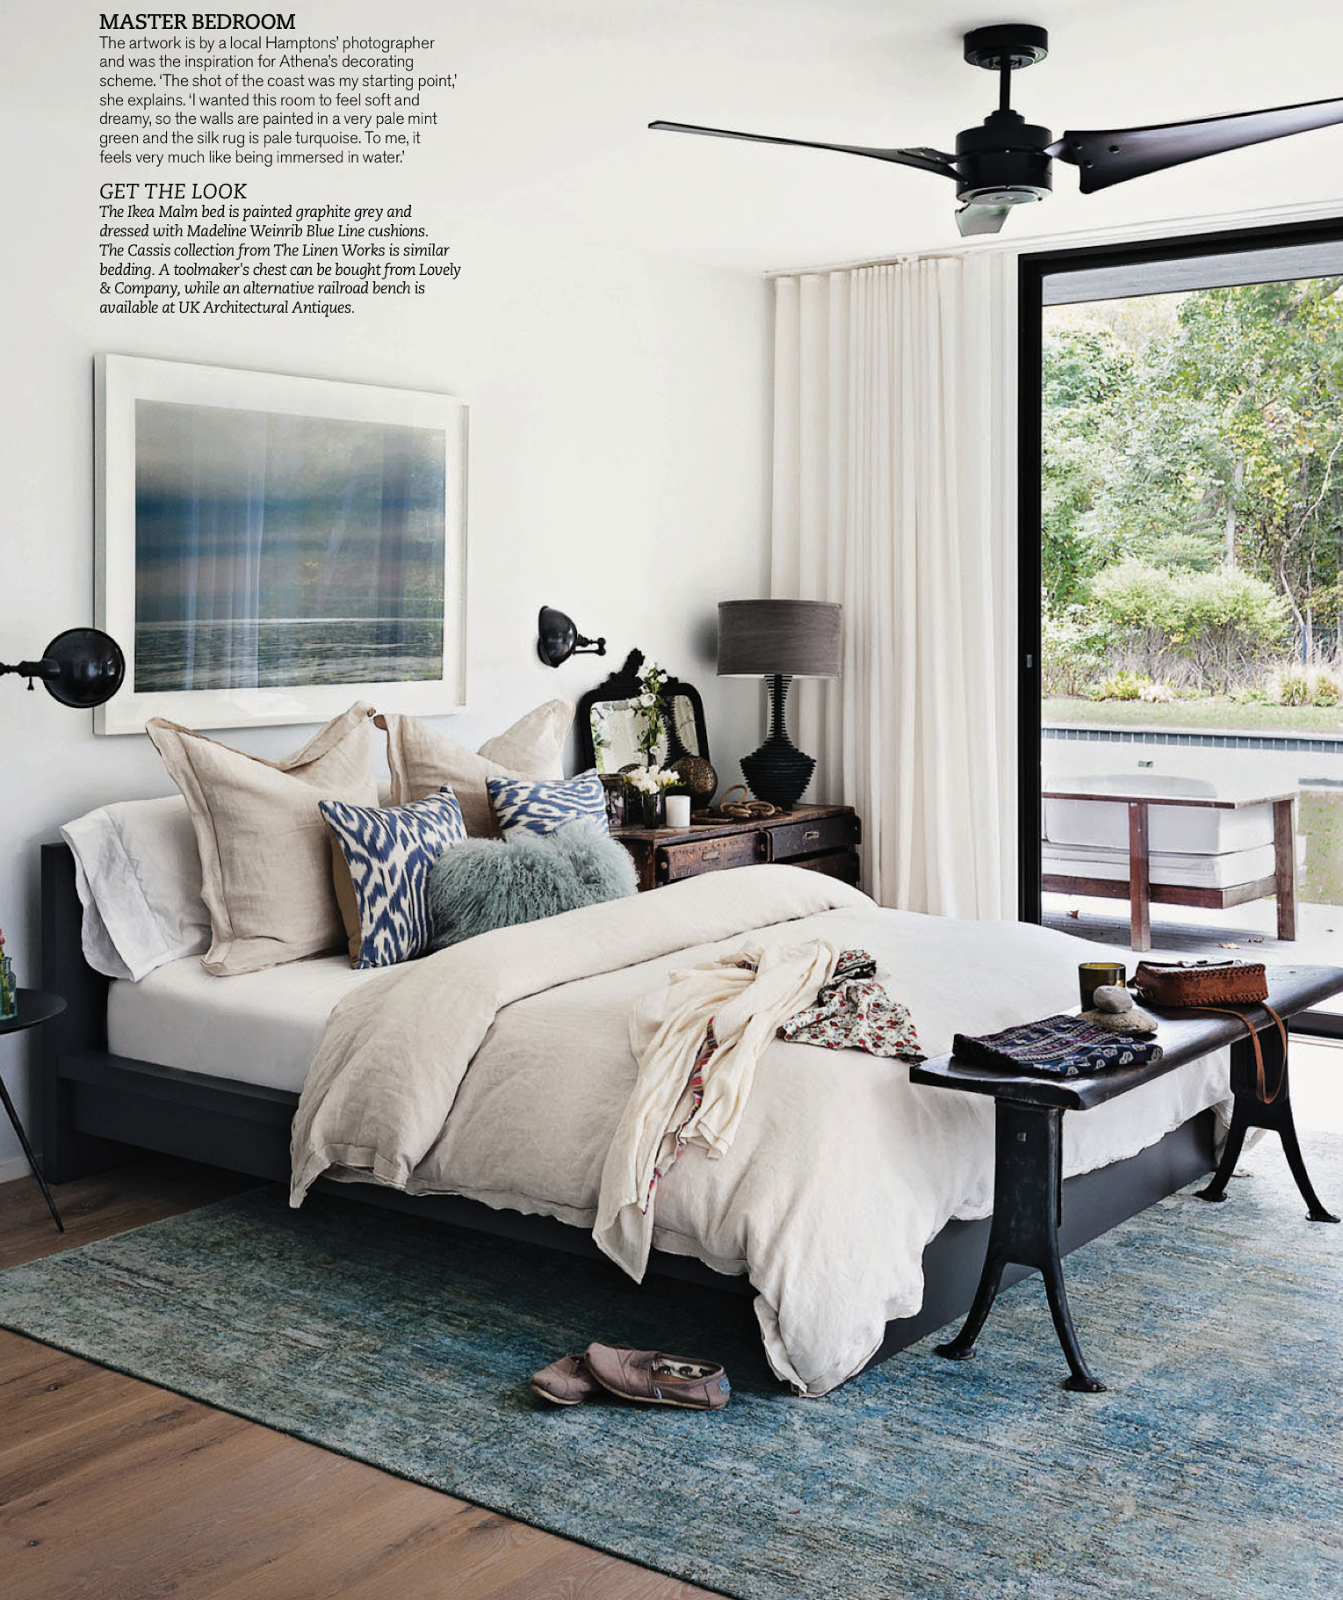 Overdyed Rug Layered Bedding Comfy Bedroom White Walls Modern Ceiling Fan Lots Of Pillows Art Over Bed Bedside Sconces